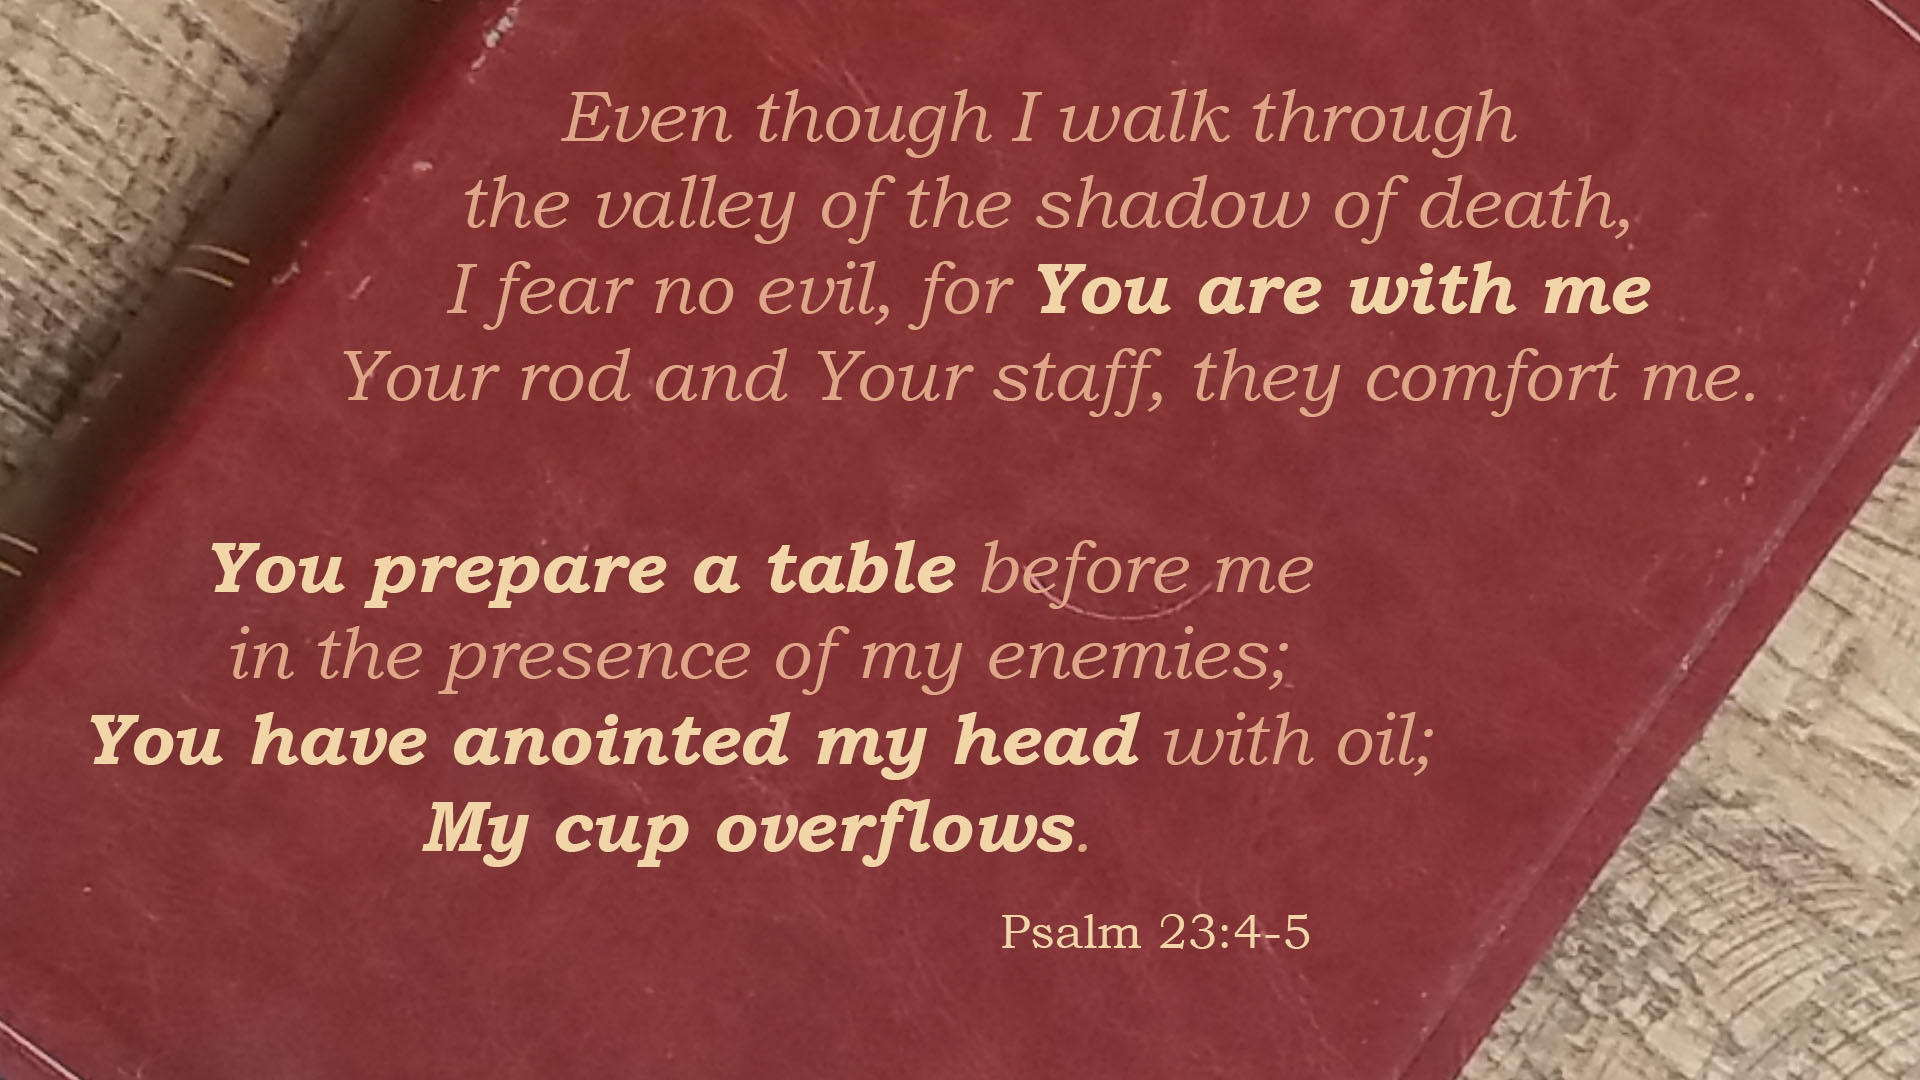 Even though I walk through the valley of the shadow of death, I fear no evil, for You are with me; Your rod and Your staff, they comfort me. You prepare a table before me in the presence of my enemies; You have anointed my head with oil; My cup overflows. Psalm 23:4 Psalm 32:5